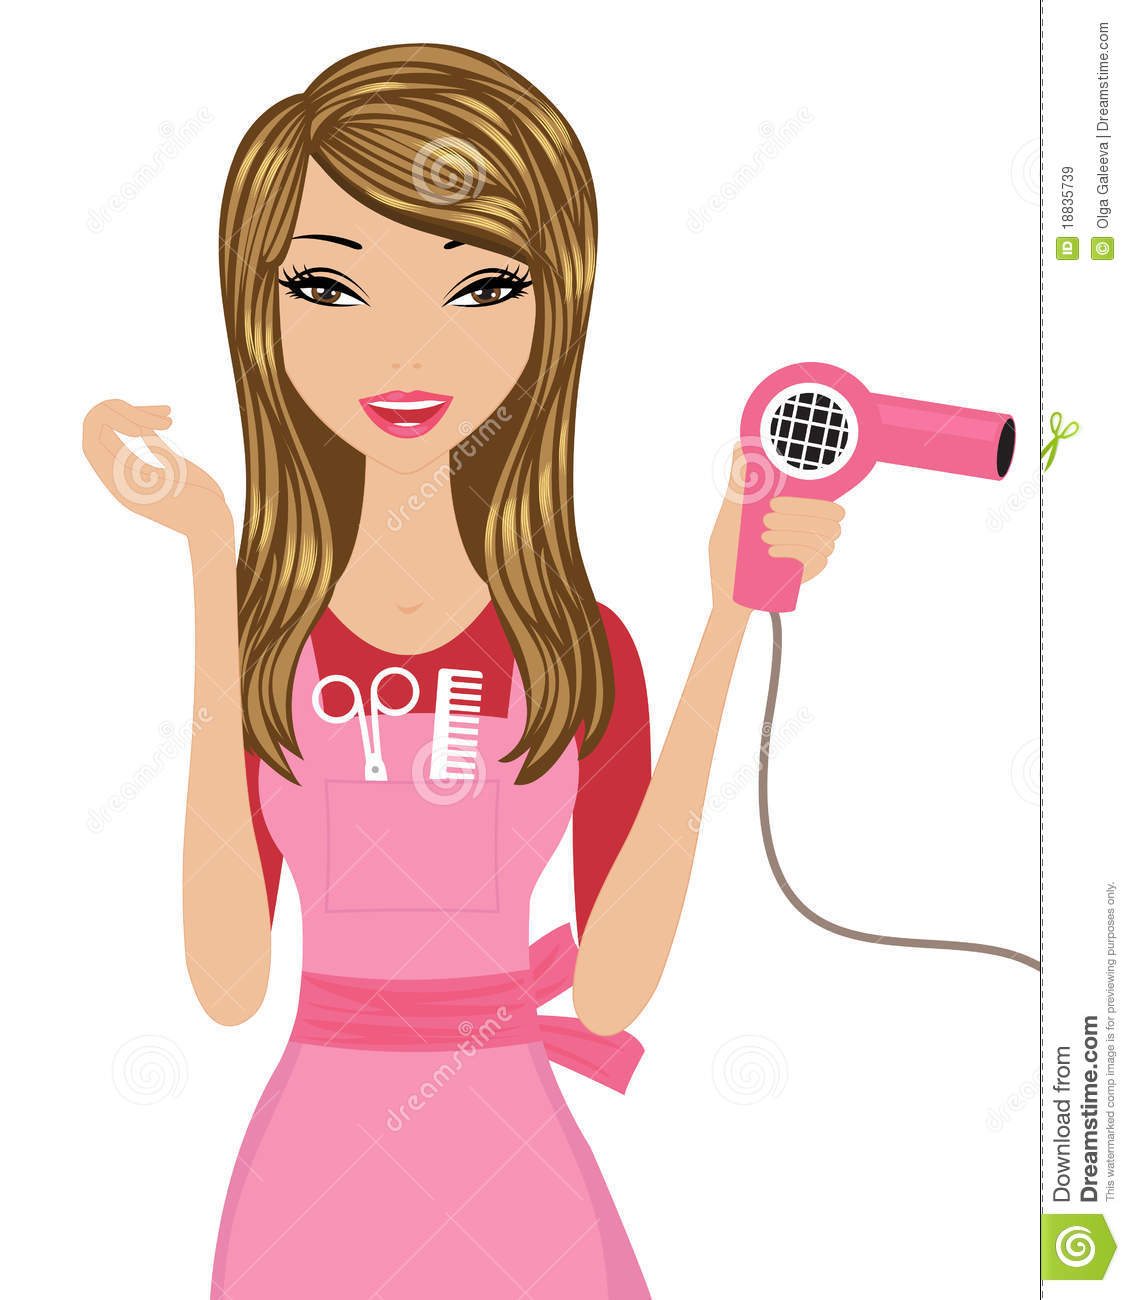 hairdresser royalty free stock images image 18835739 hair dryer clip art png hair dryer clipart png